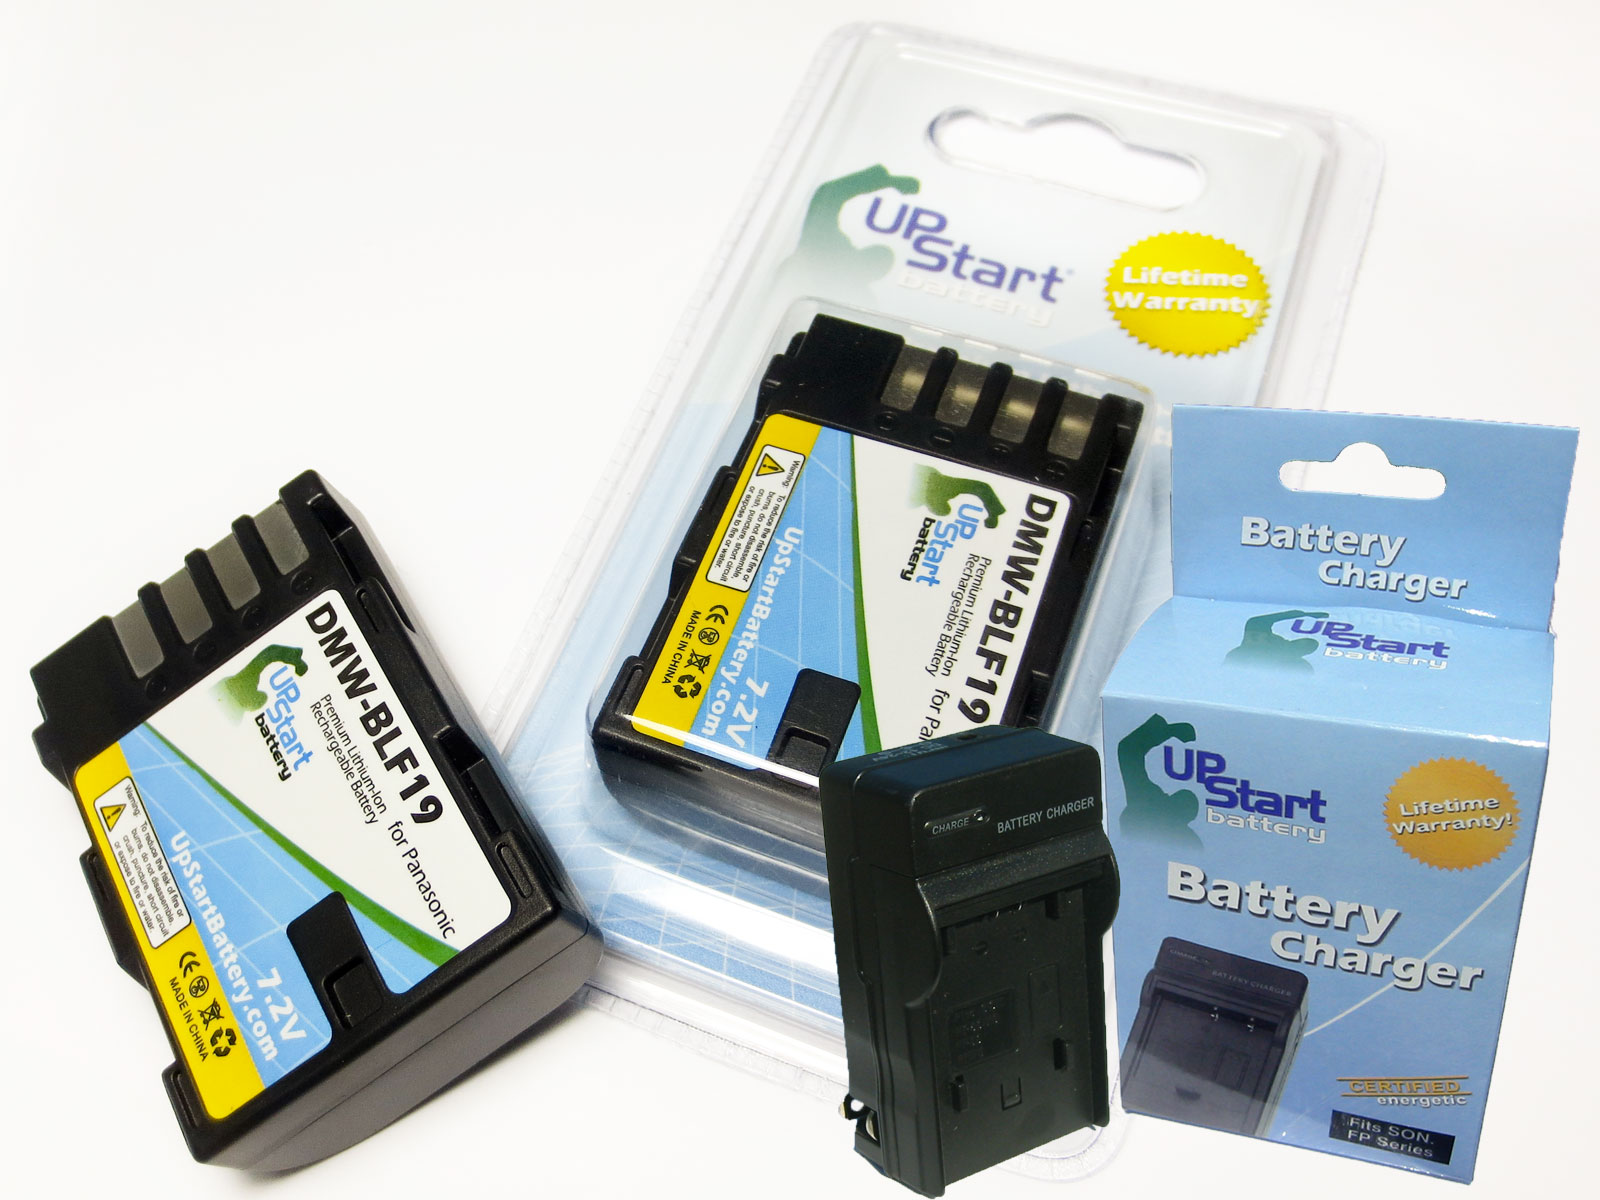 UpStart Battery 2x Pack - Panasonic DMW-BLF19 Digital Camera Battery + Charger - Replacement Kit for Panasonic DMW-BLF19 at Sears.com